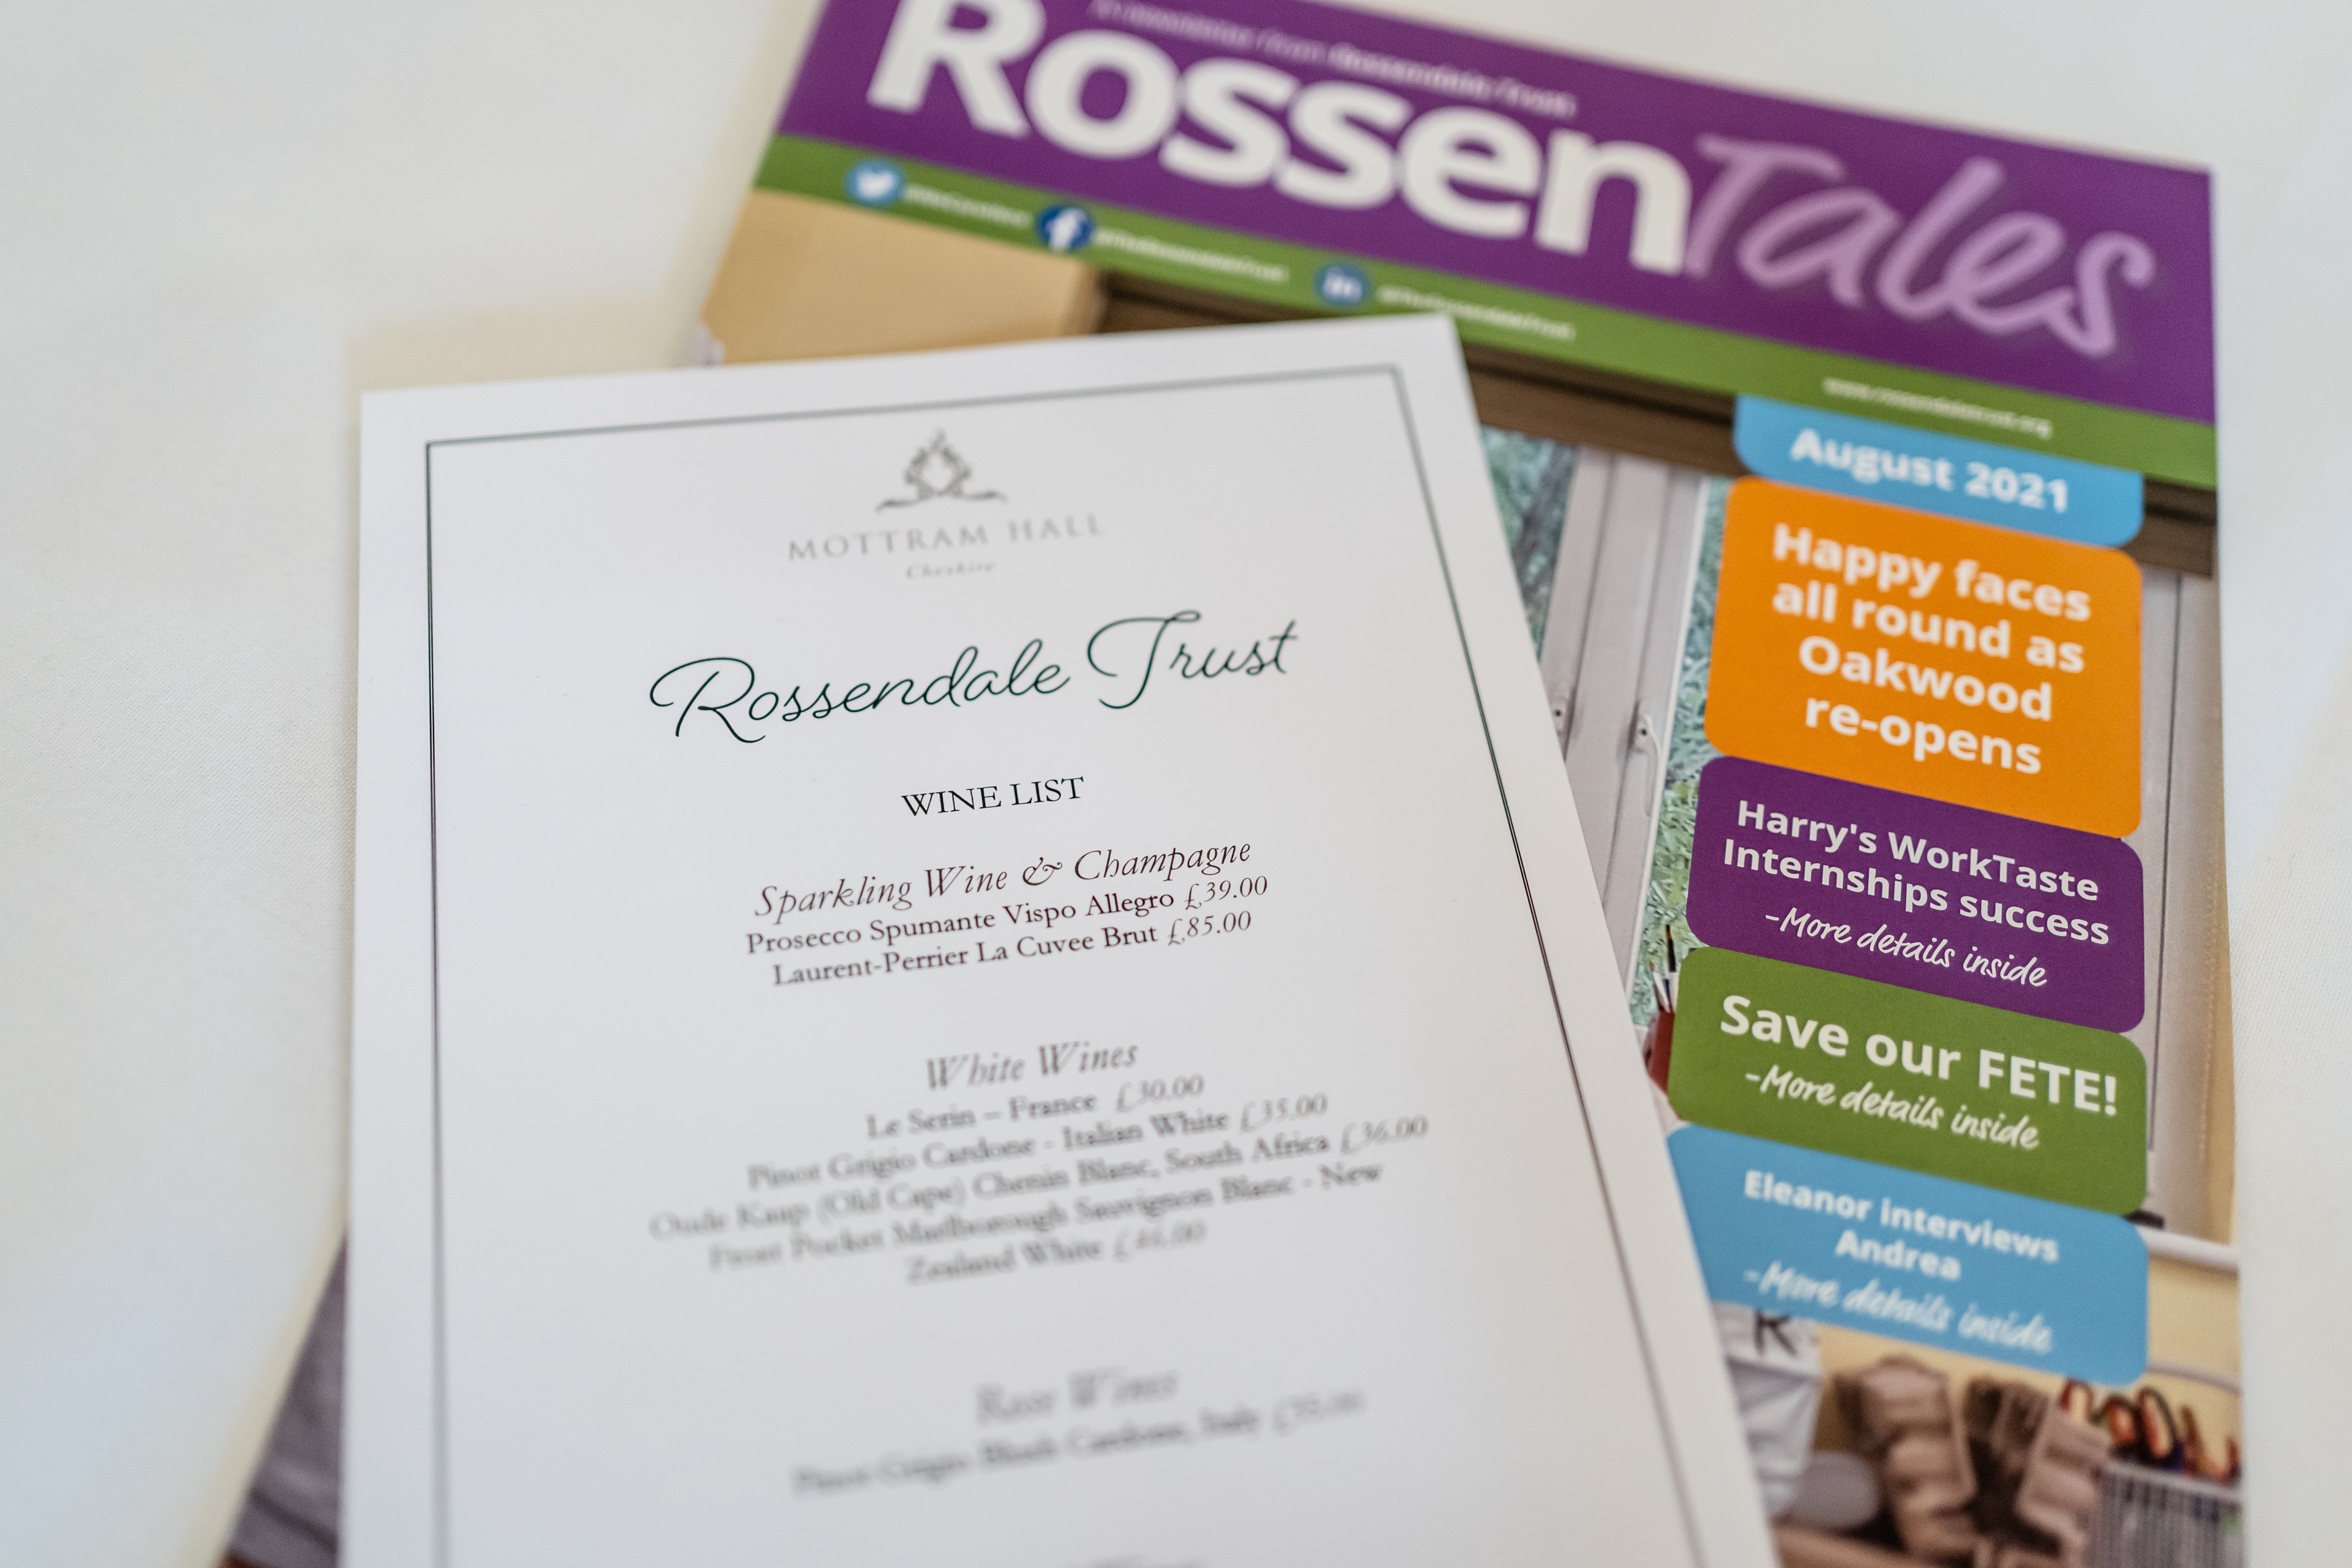 Harts - The Rossendale Charity